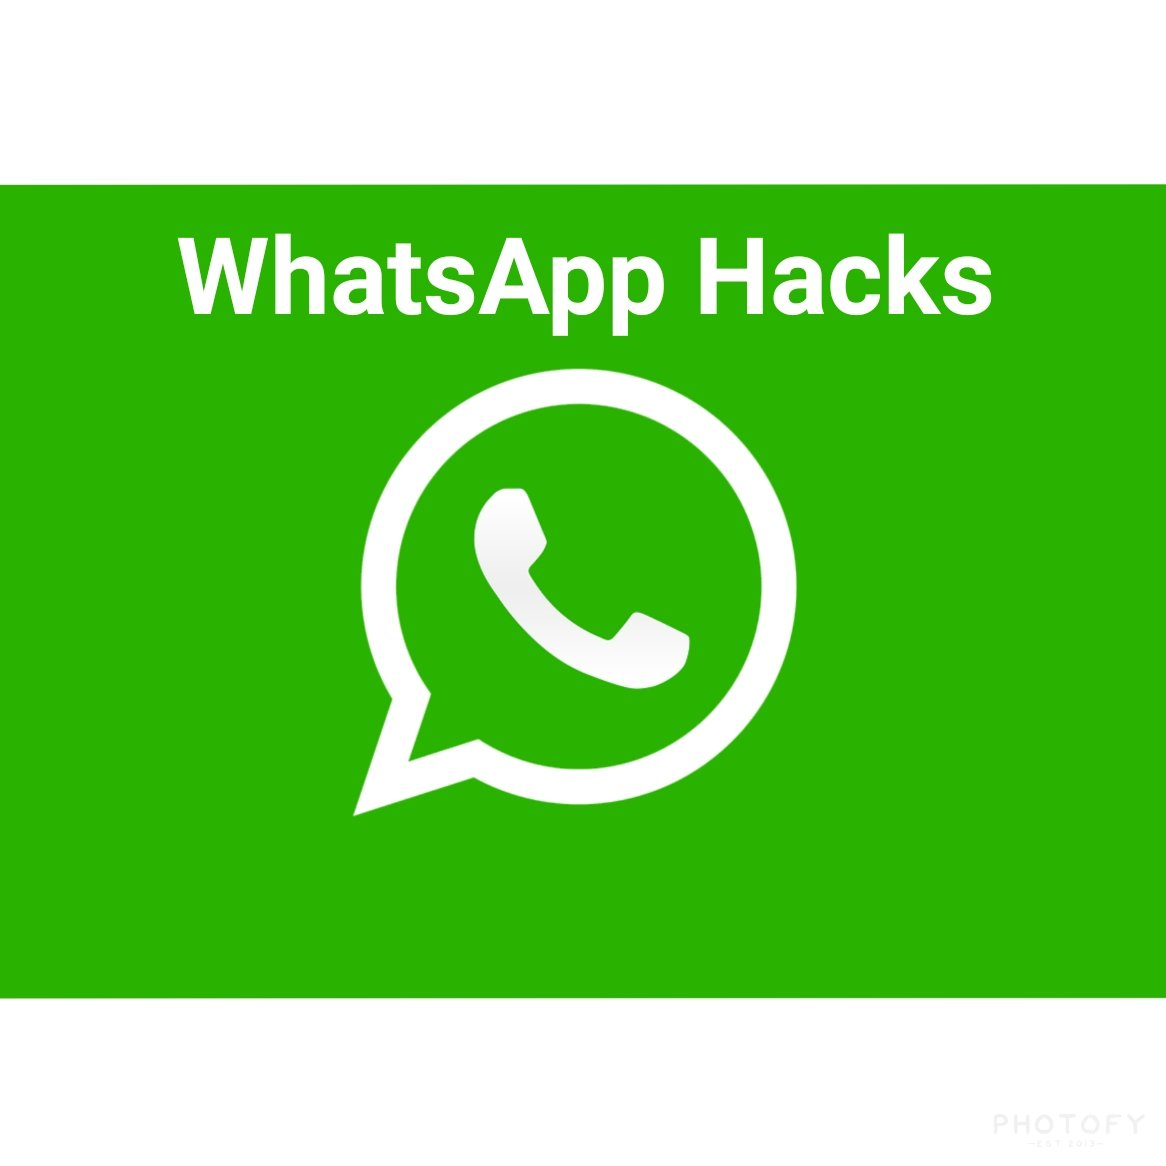 WhatsApp Hacks: How to get two WhatsApp on your iPhone gb whatsapp download